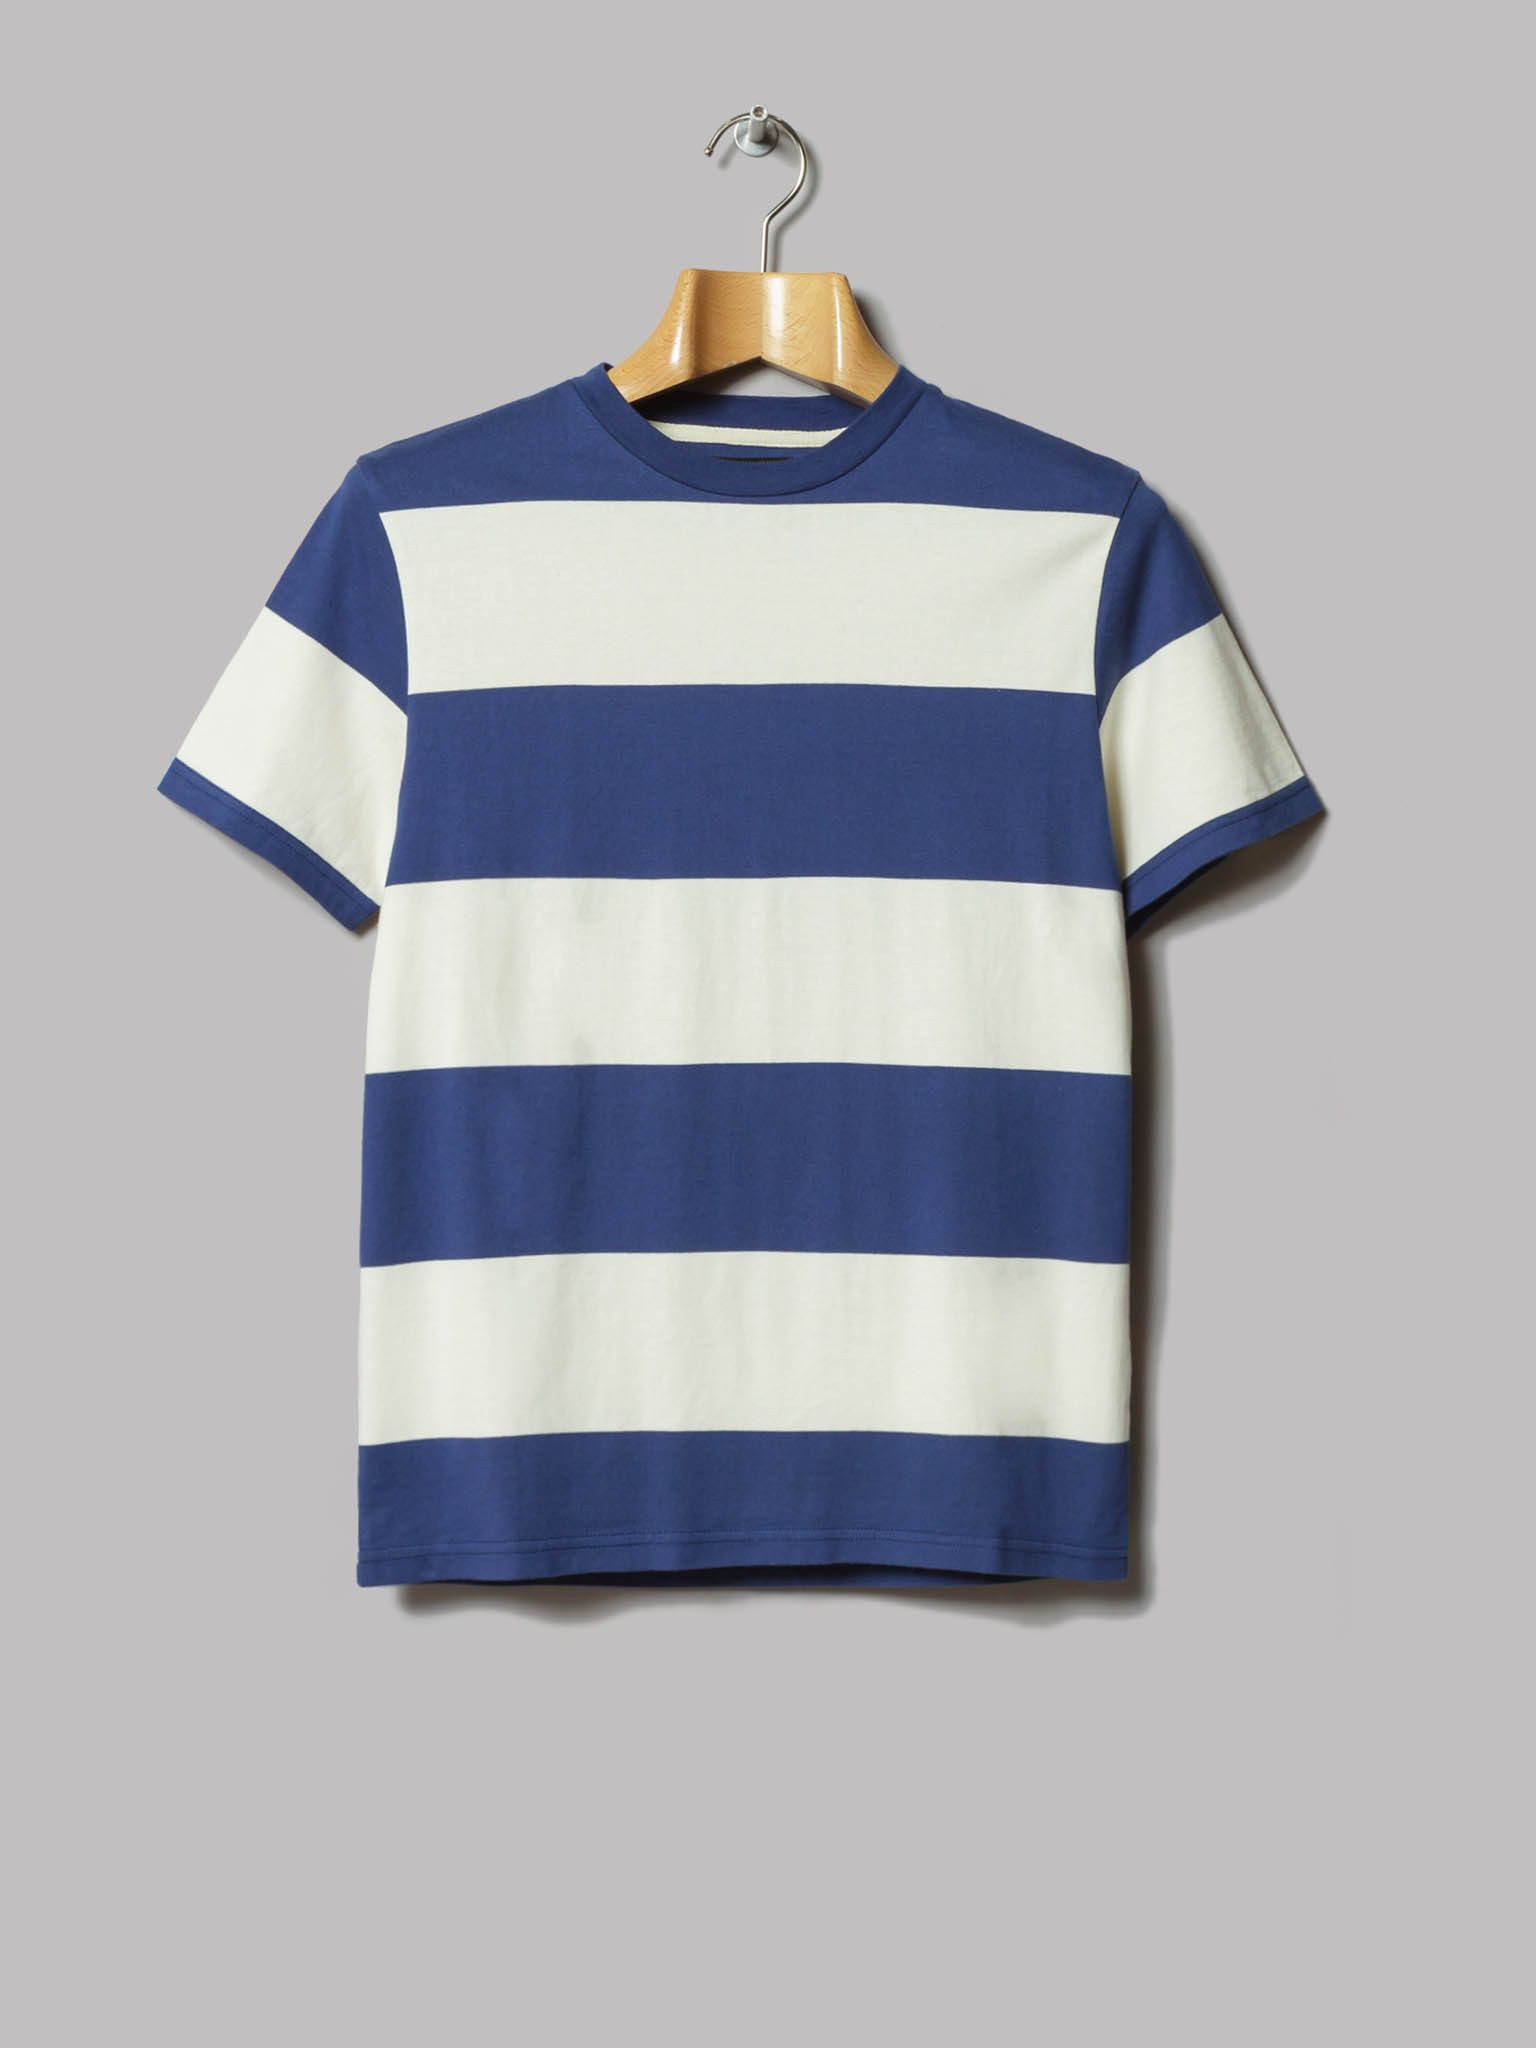 5f46655653 Beams Plus 4 Inch Pitch Border T-Shirt (Off White / Navy) | Styler ...